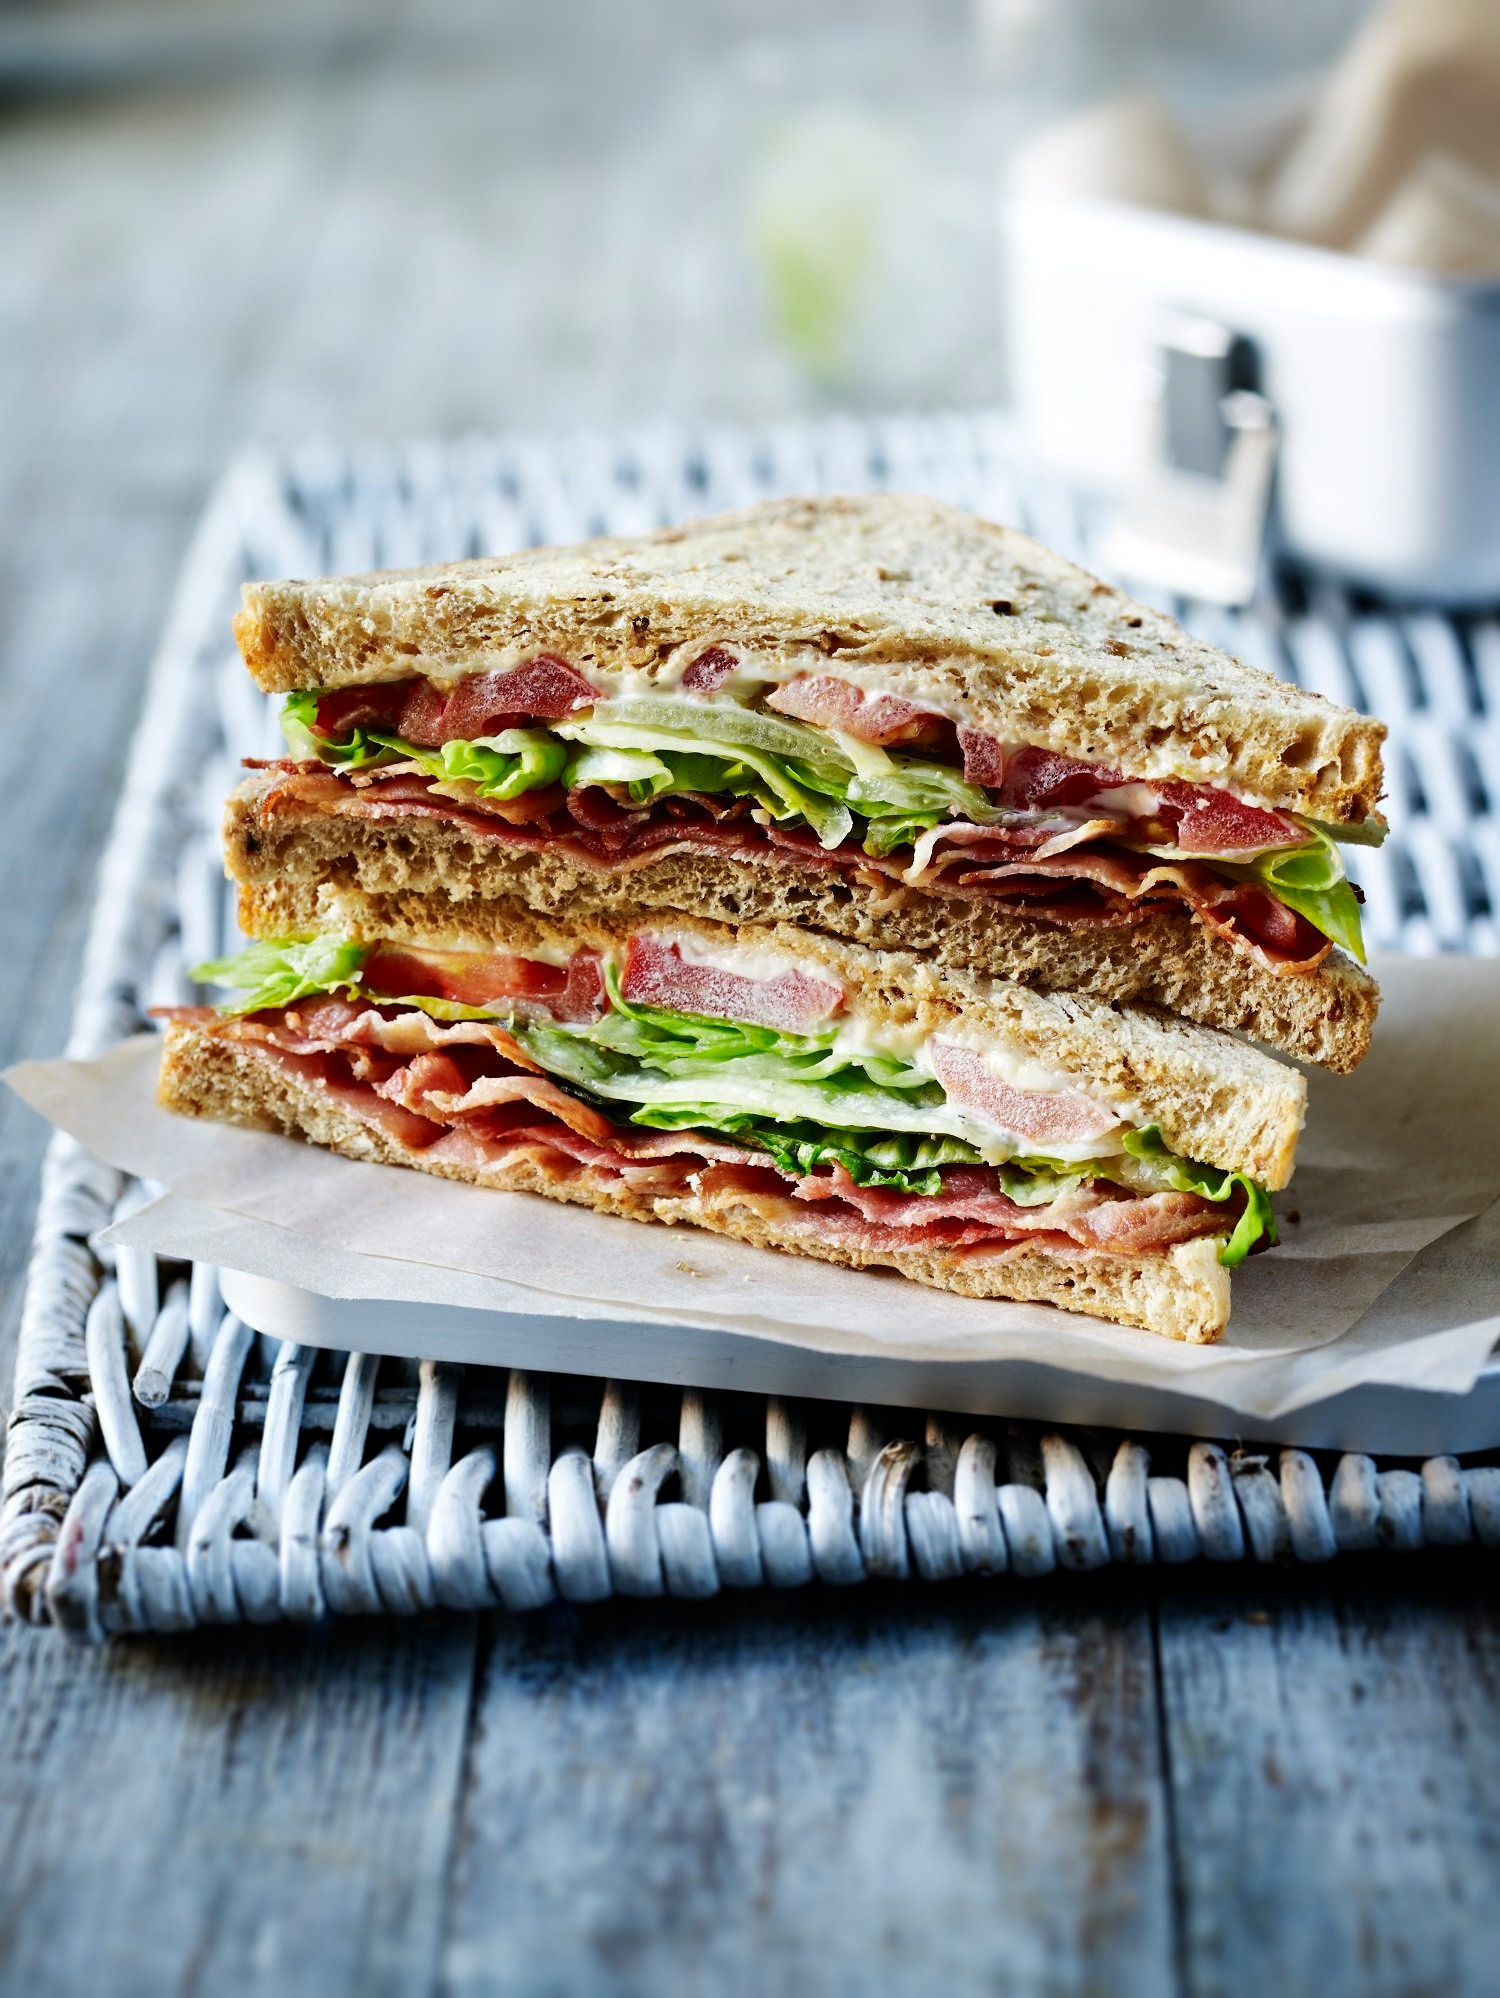 M&S Add Vitamin D To Sandwiches To Boost Britain's